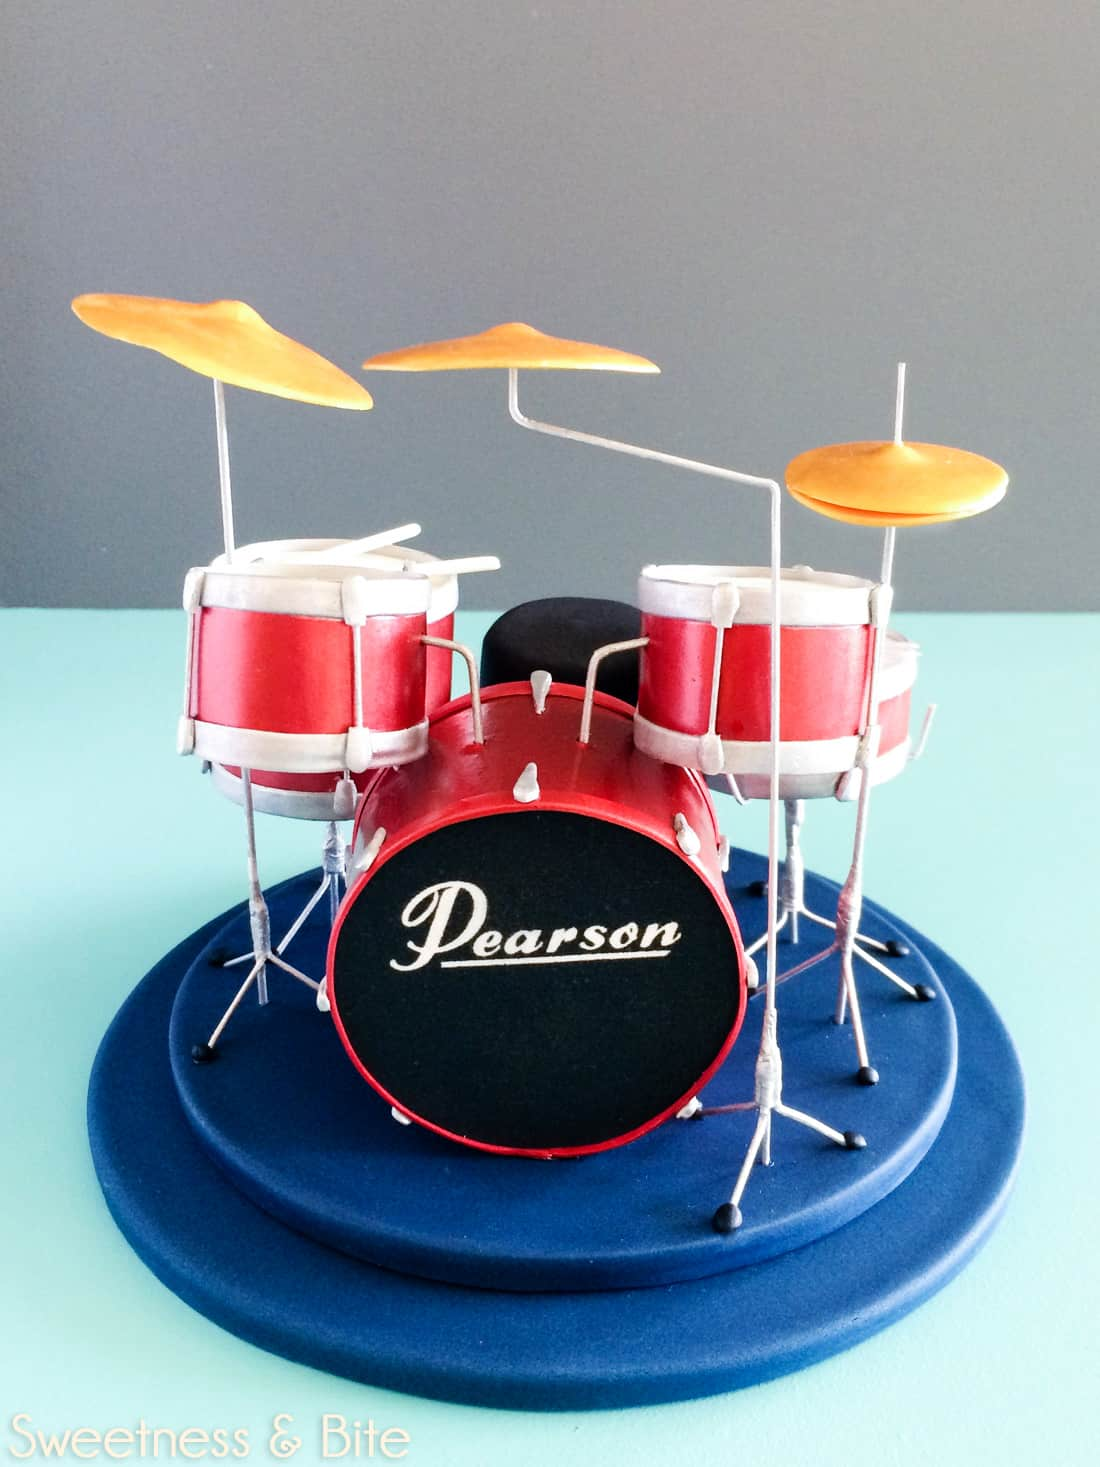 Drum Kit Cake ~ Sweetness & Bite